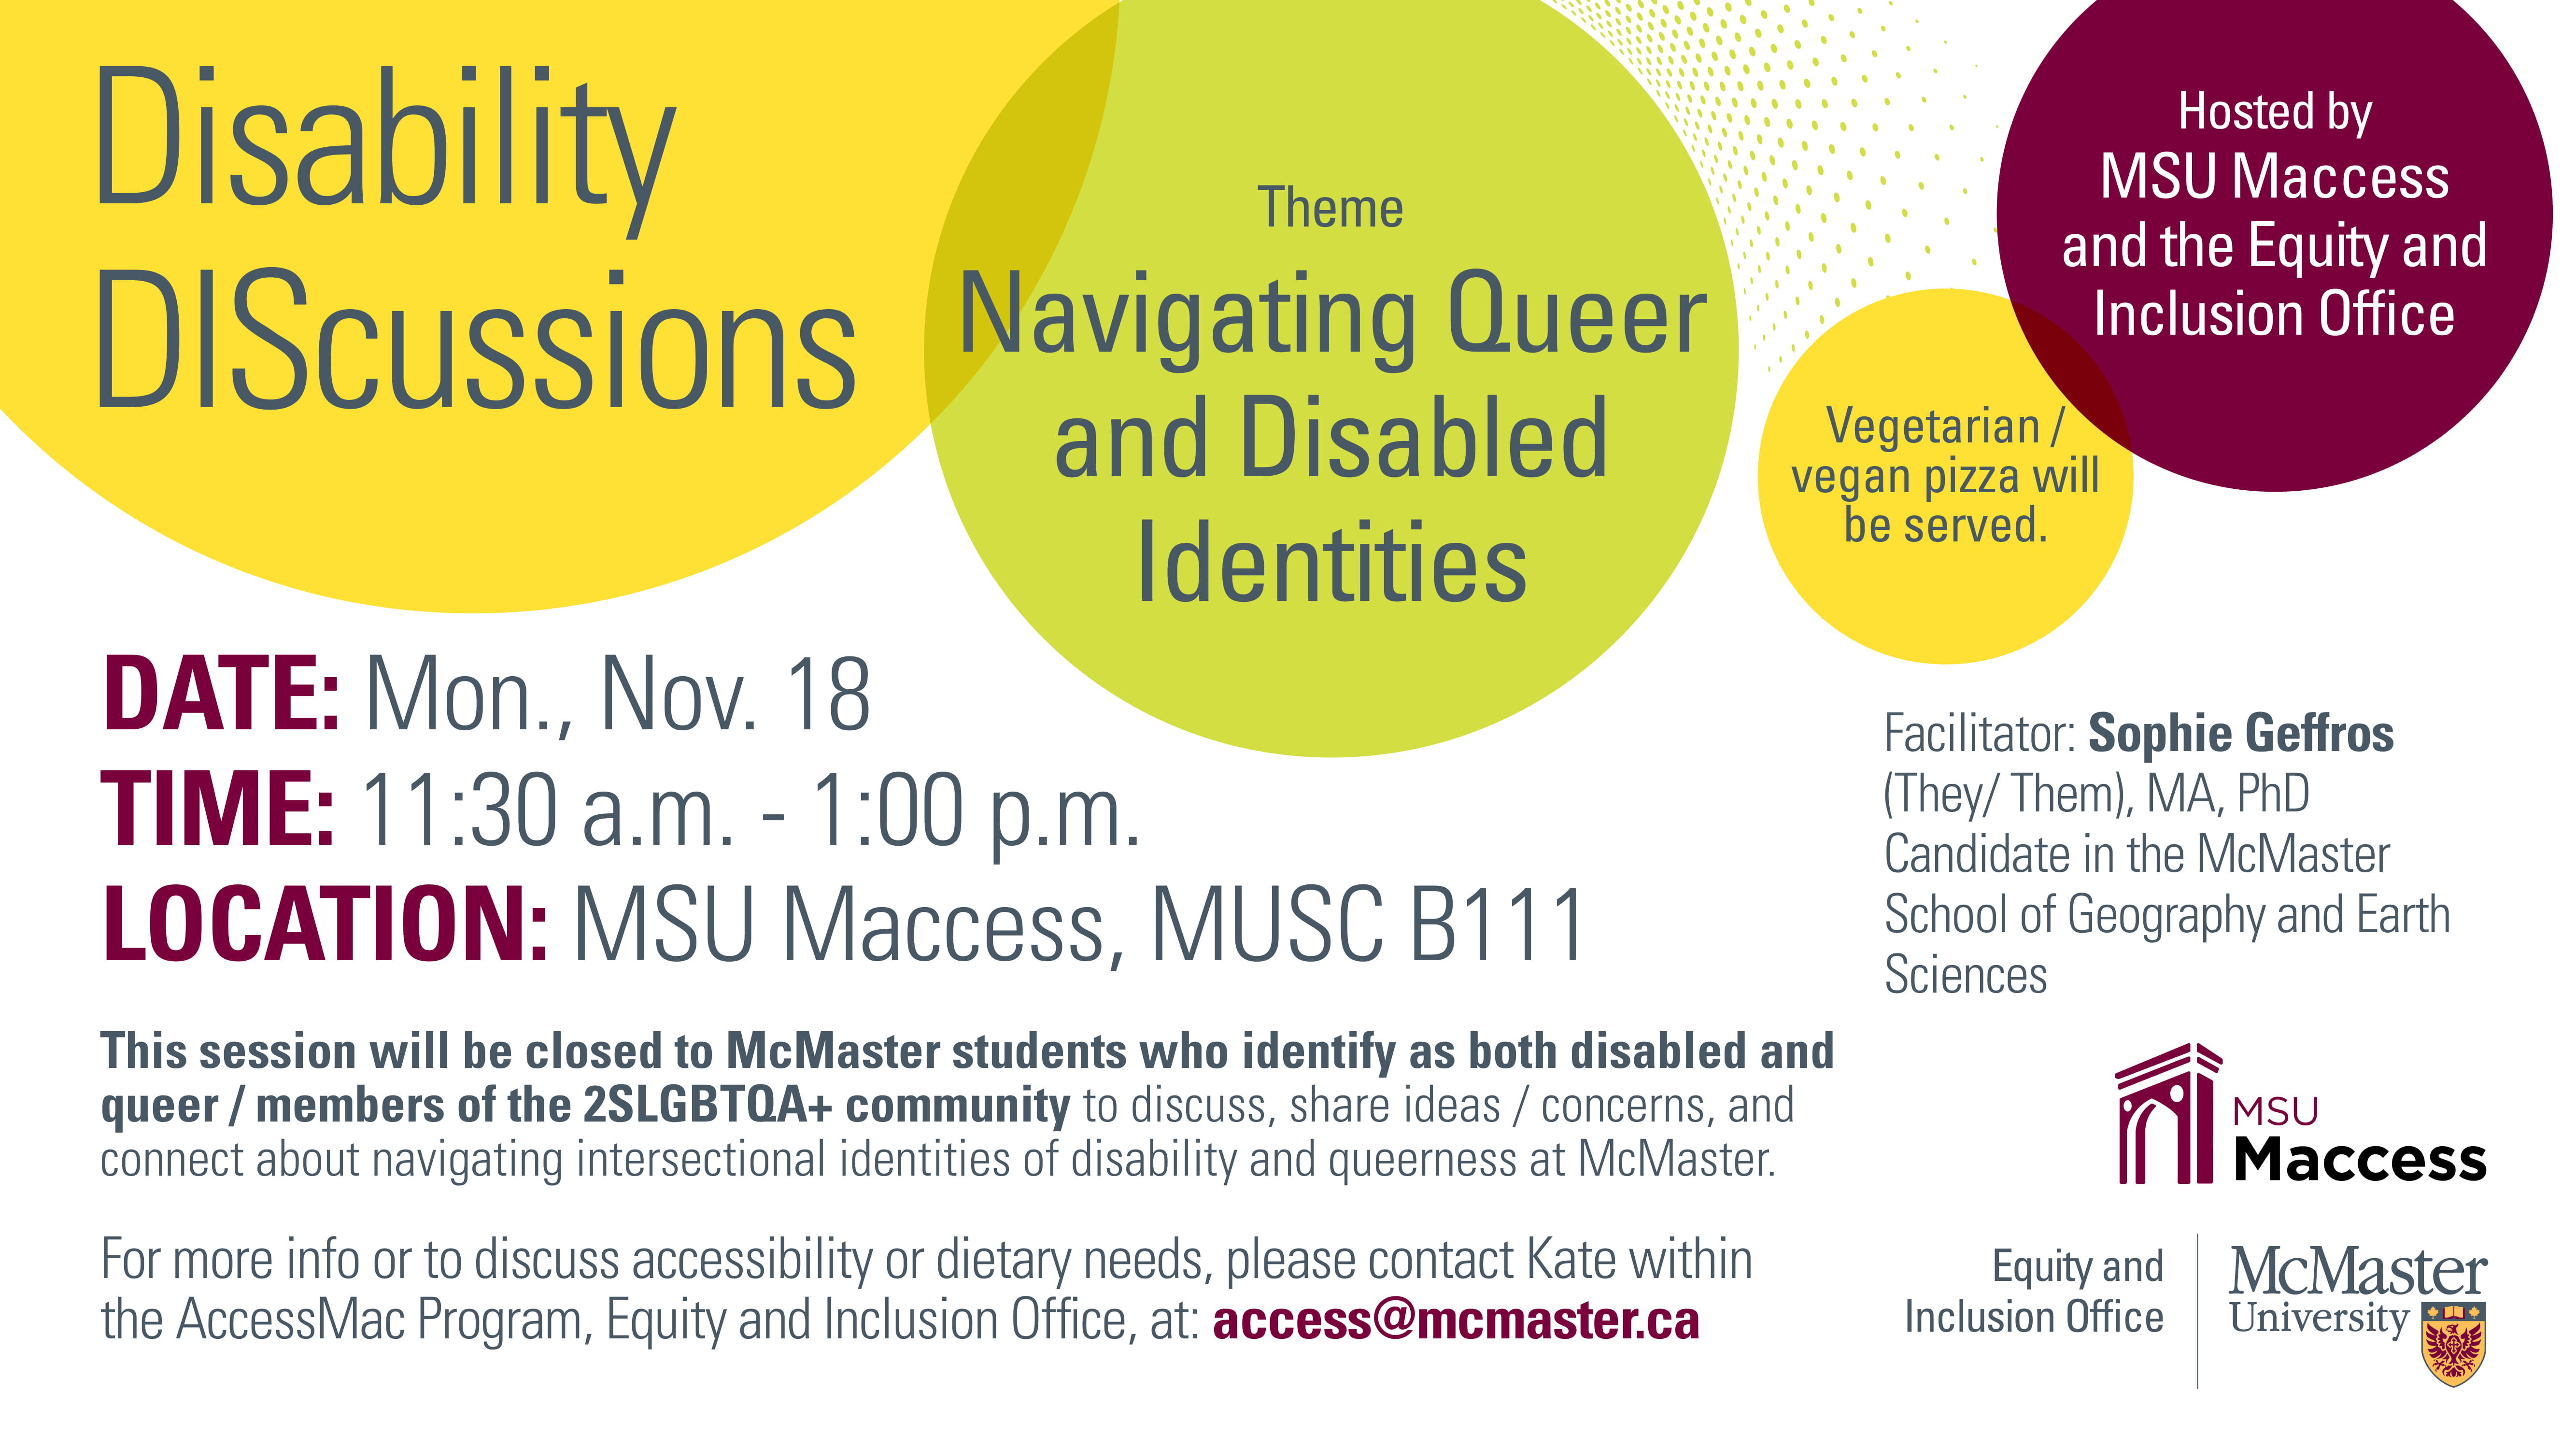 Official poster for Disability Discussions. The theme is